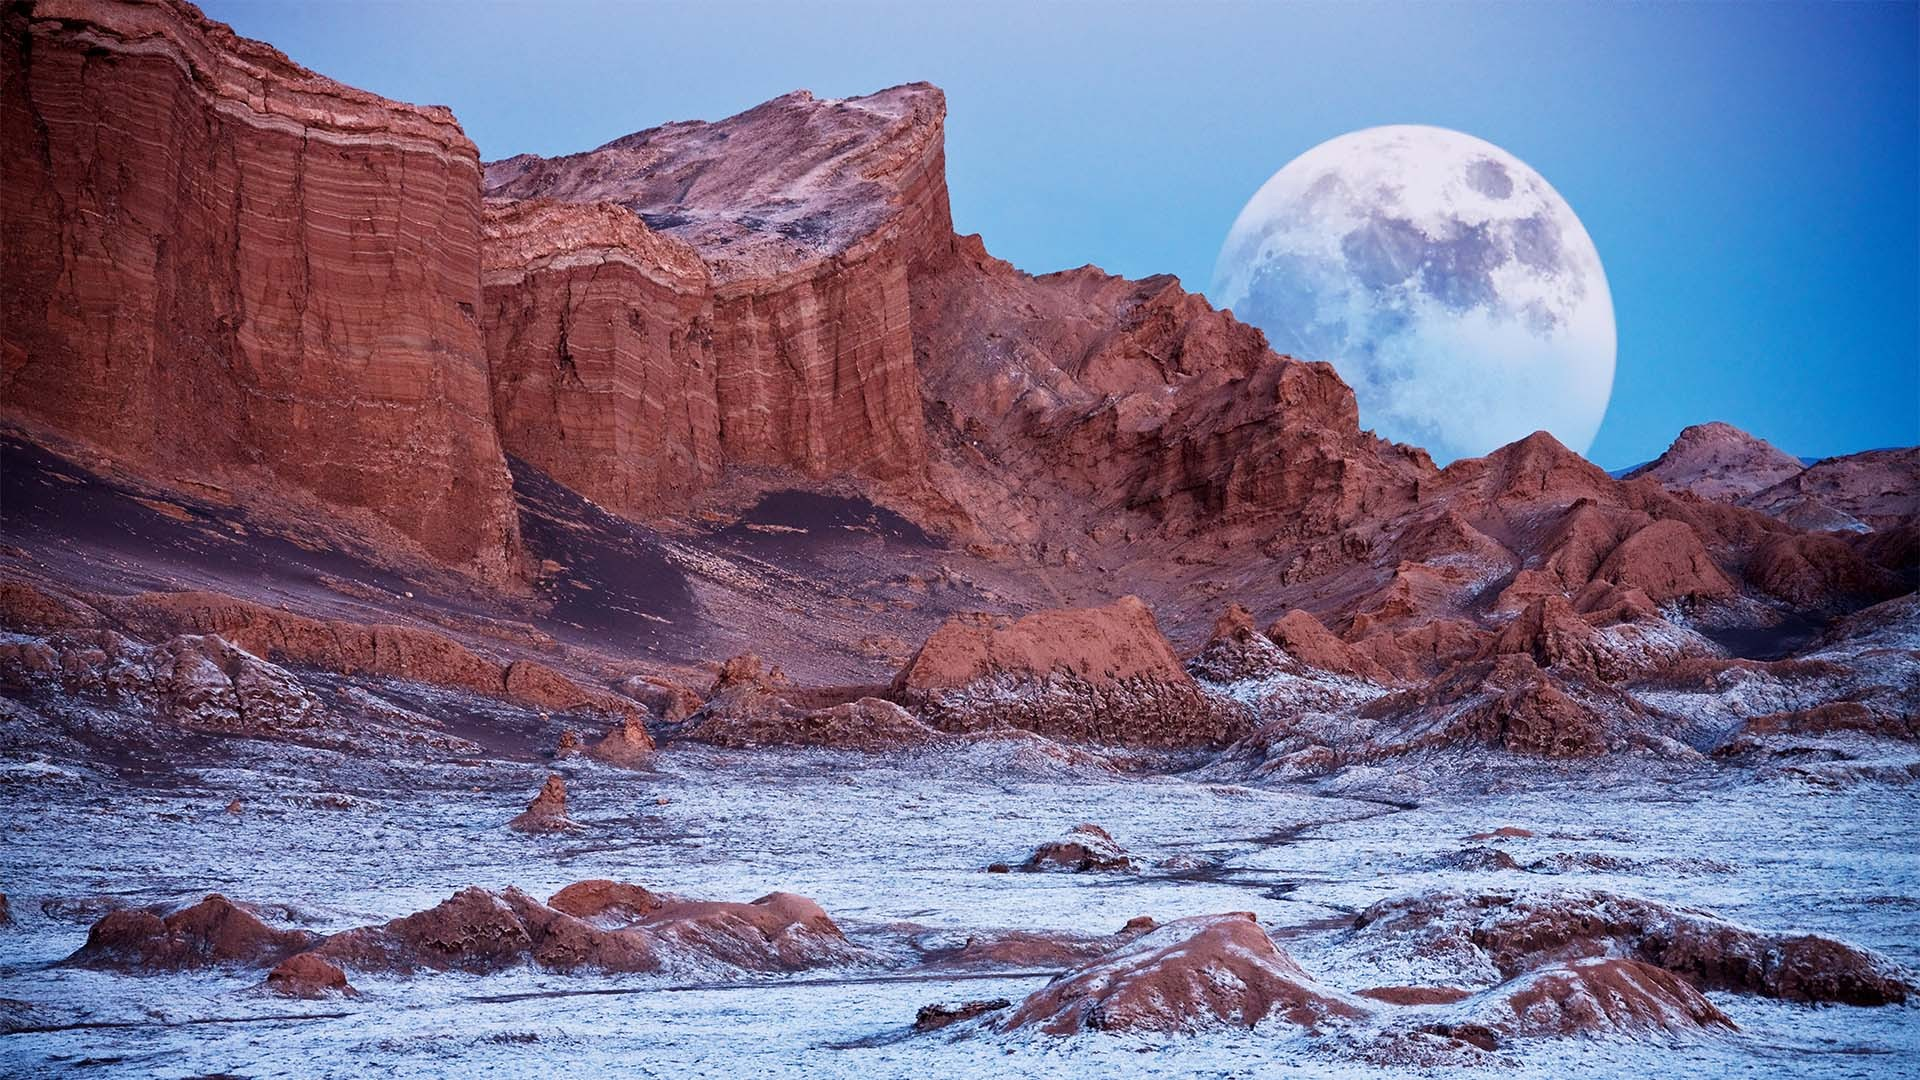 Supermoon in the Atacama Desert, Chile